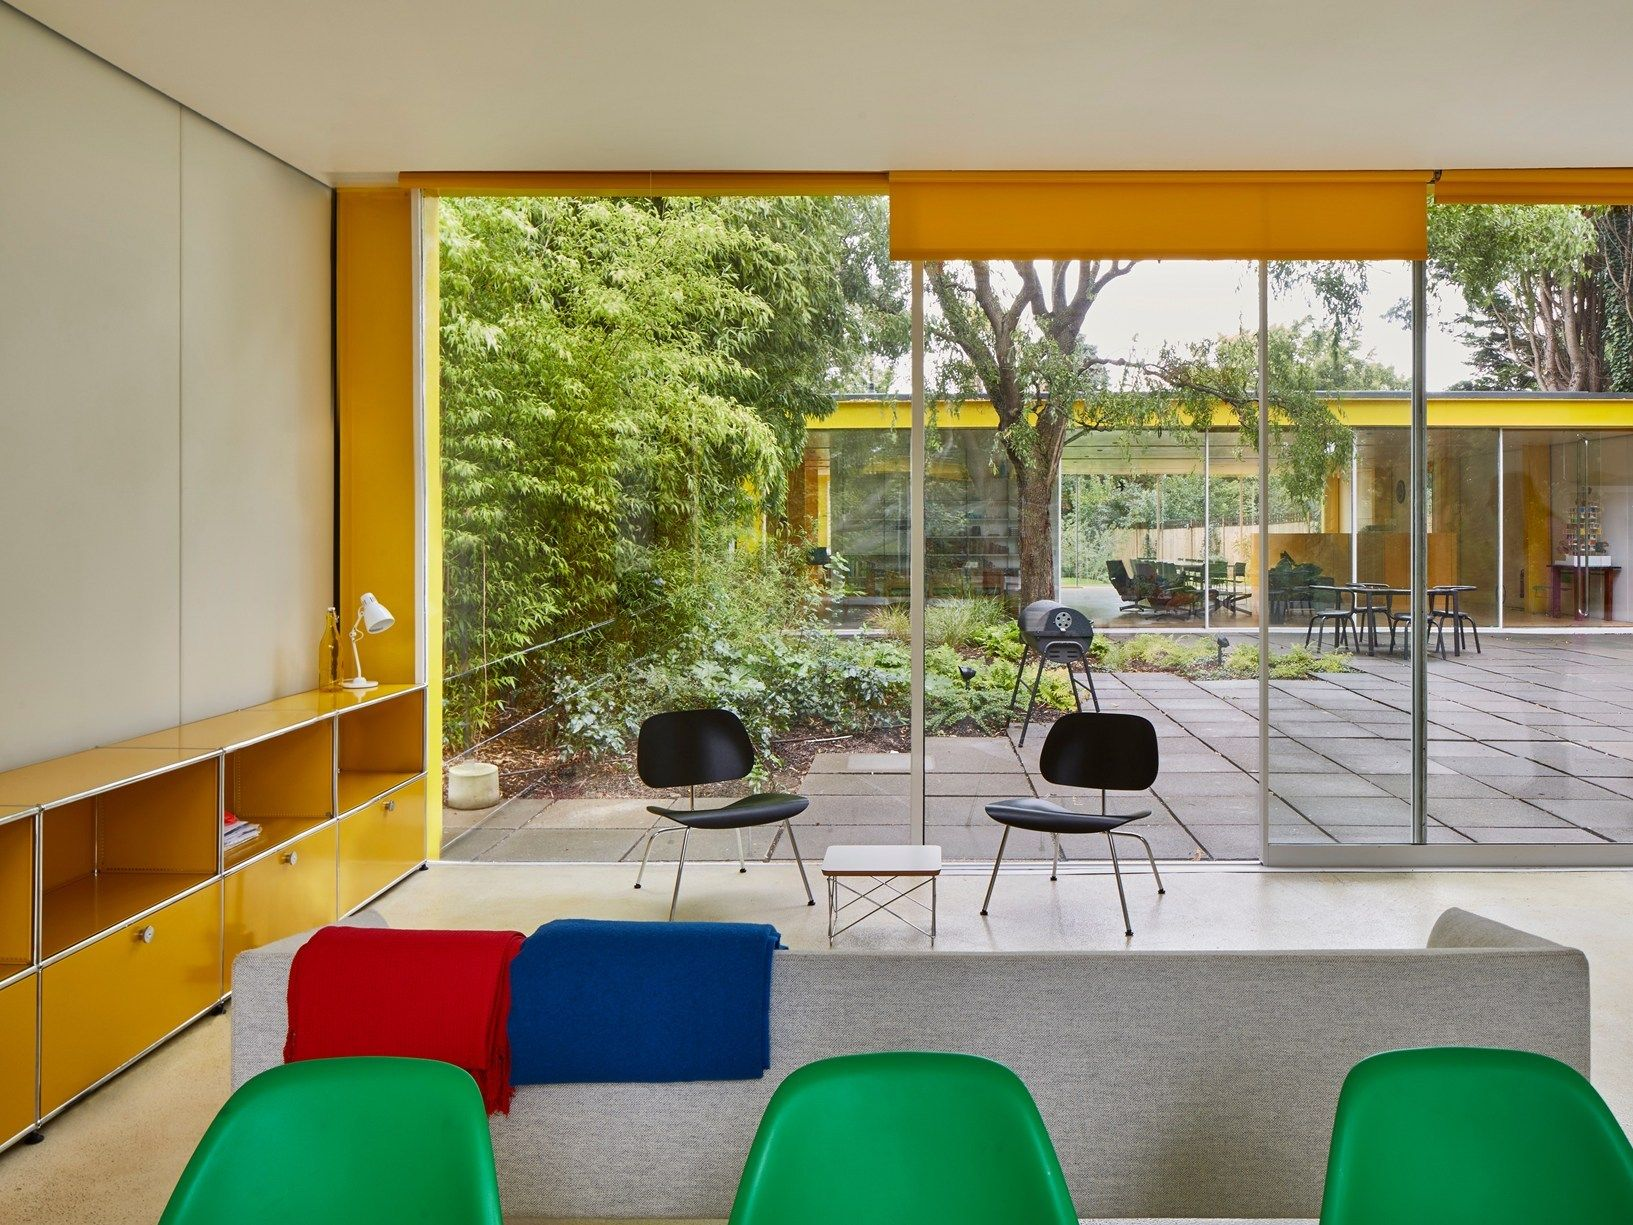 22 parkside iconic richard rogers house in wimbledon features 22 parkside iconic richard rogers house in wimbledon features wetrooms clad in hi macs malvernweather Gallery